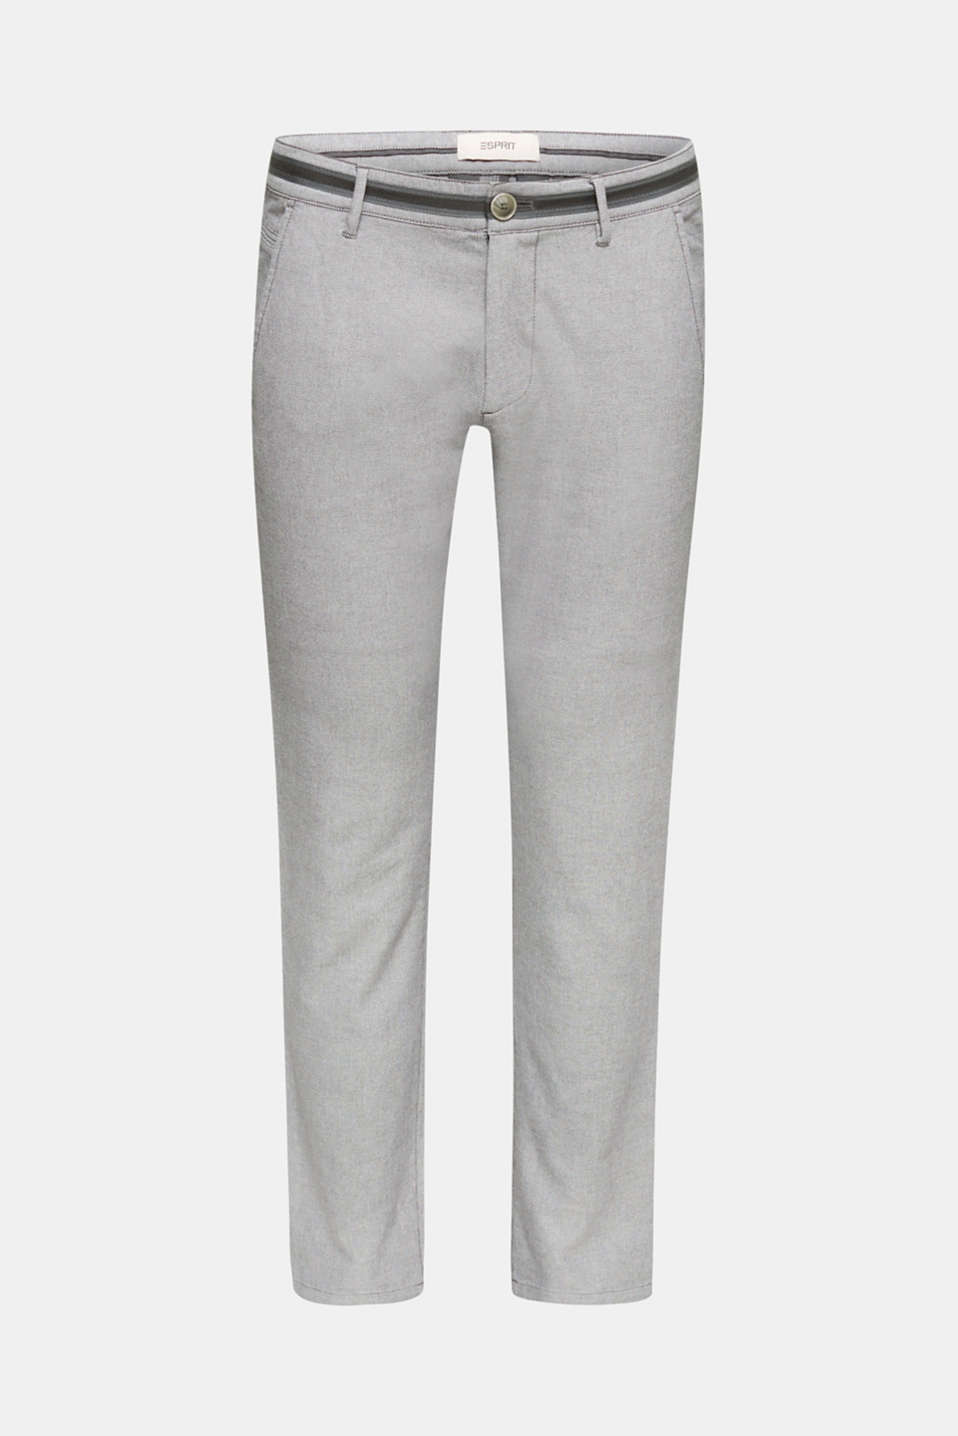 Textured trousers made of stretch cotton, DARK GREY, detail image number 7